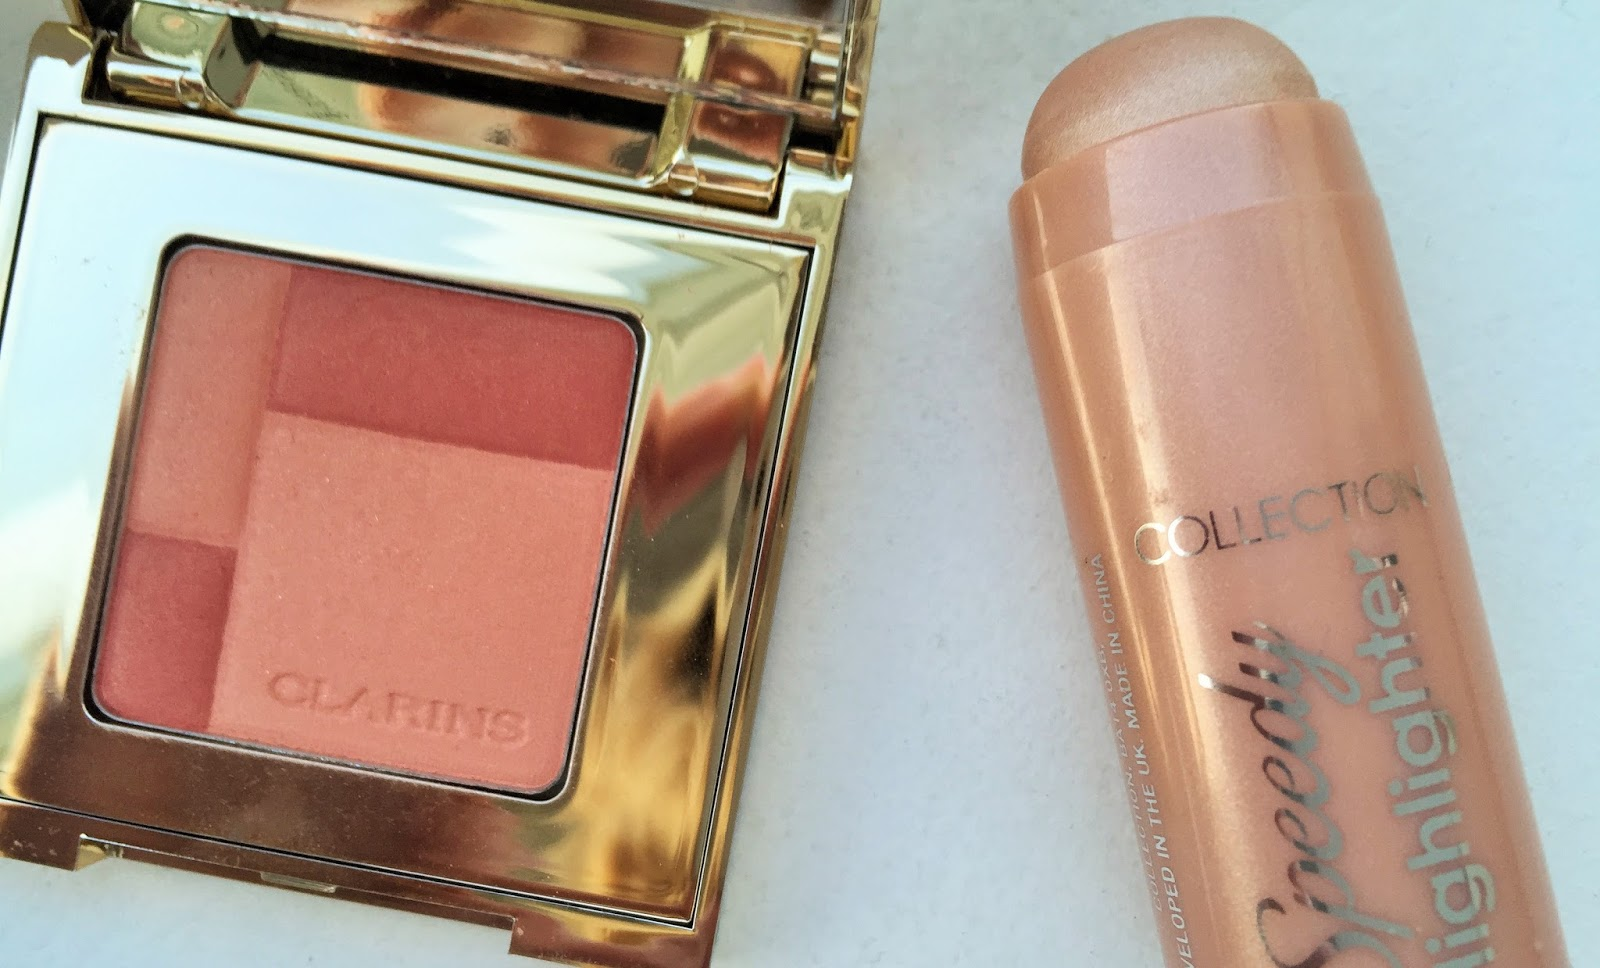 Clarins blush, Collection Speedy Highlighter